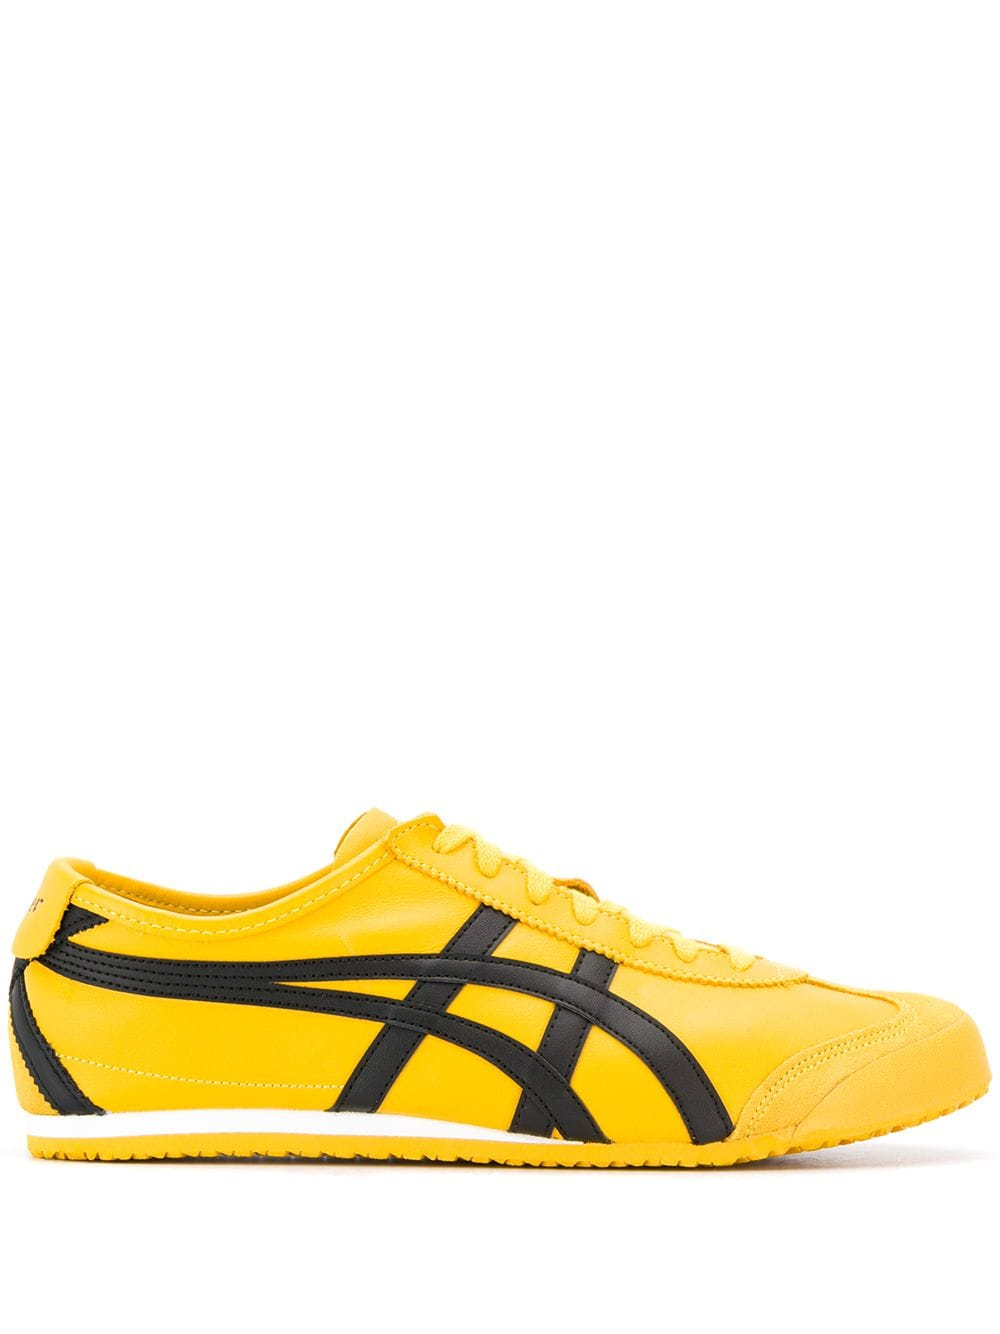 Asics Onitsuka Tiger Mexico Sneakers In